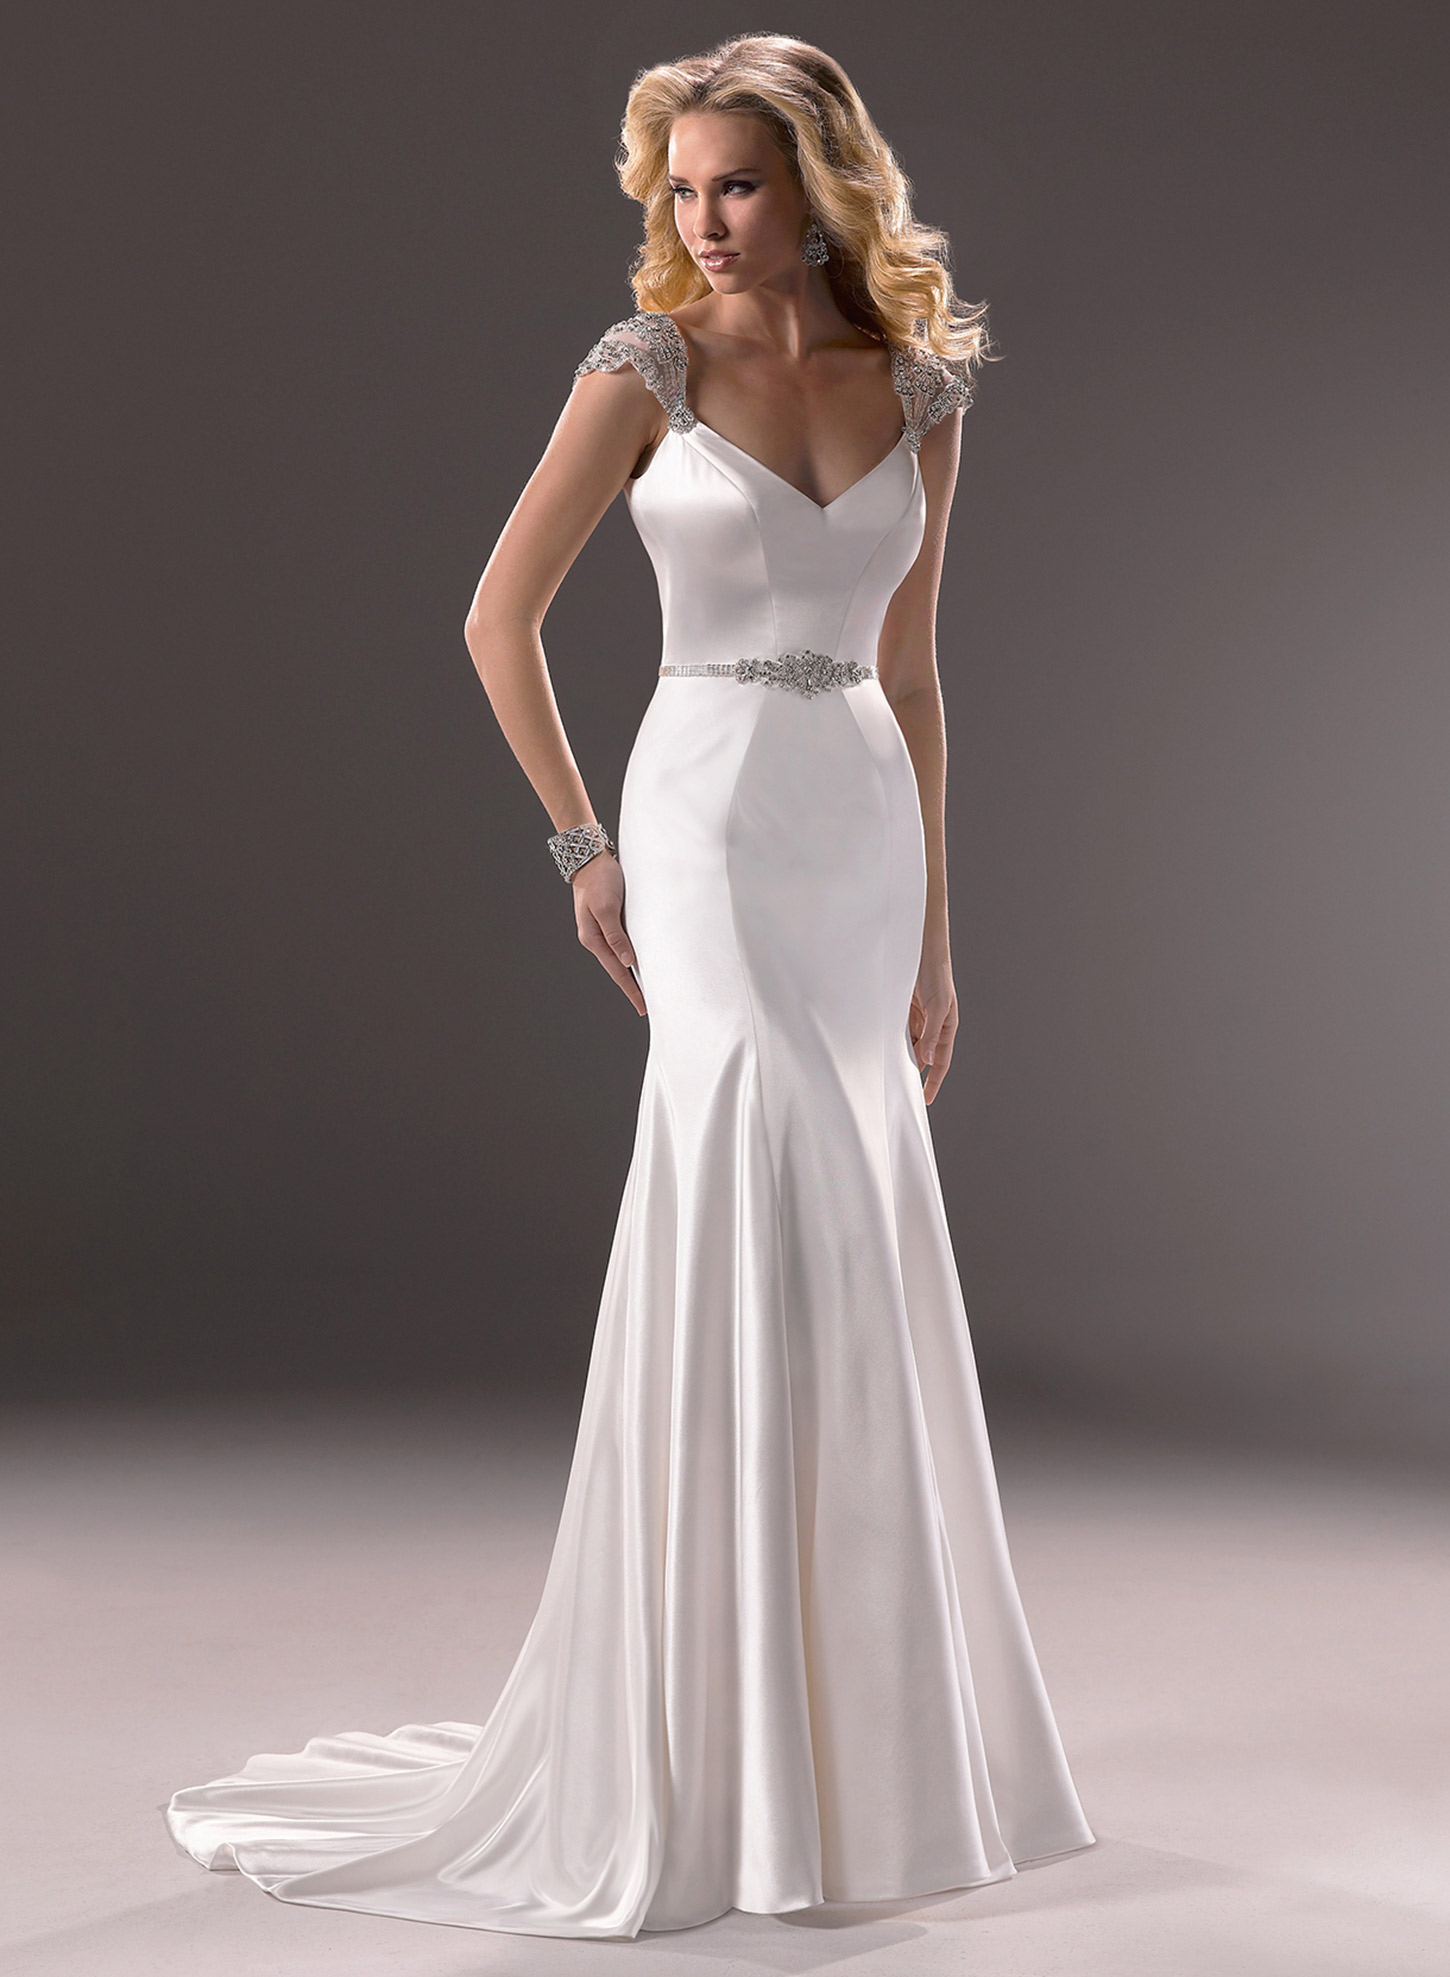 maggie-scottero-wedding-dresses-2014-25-01302014